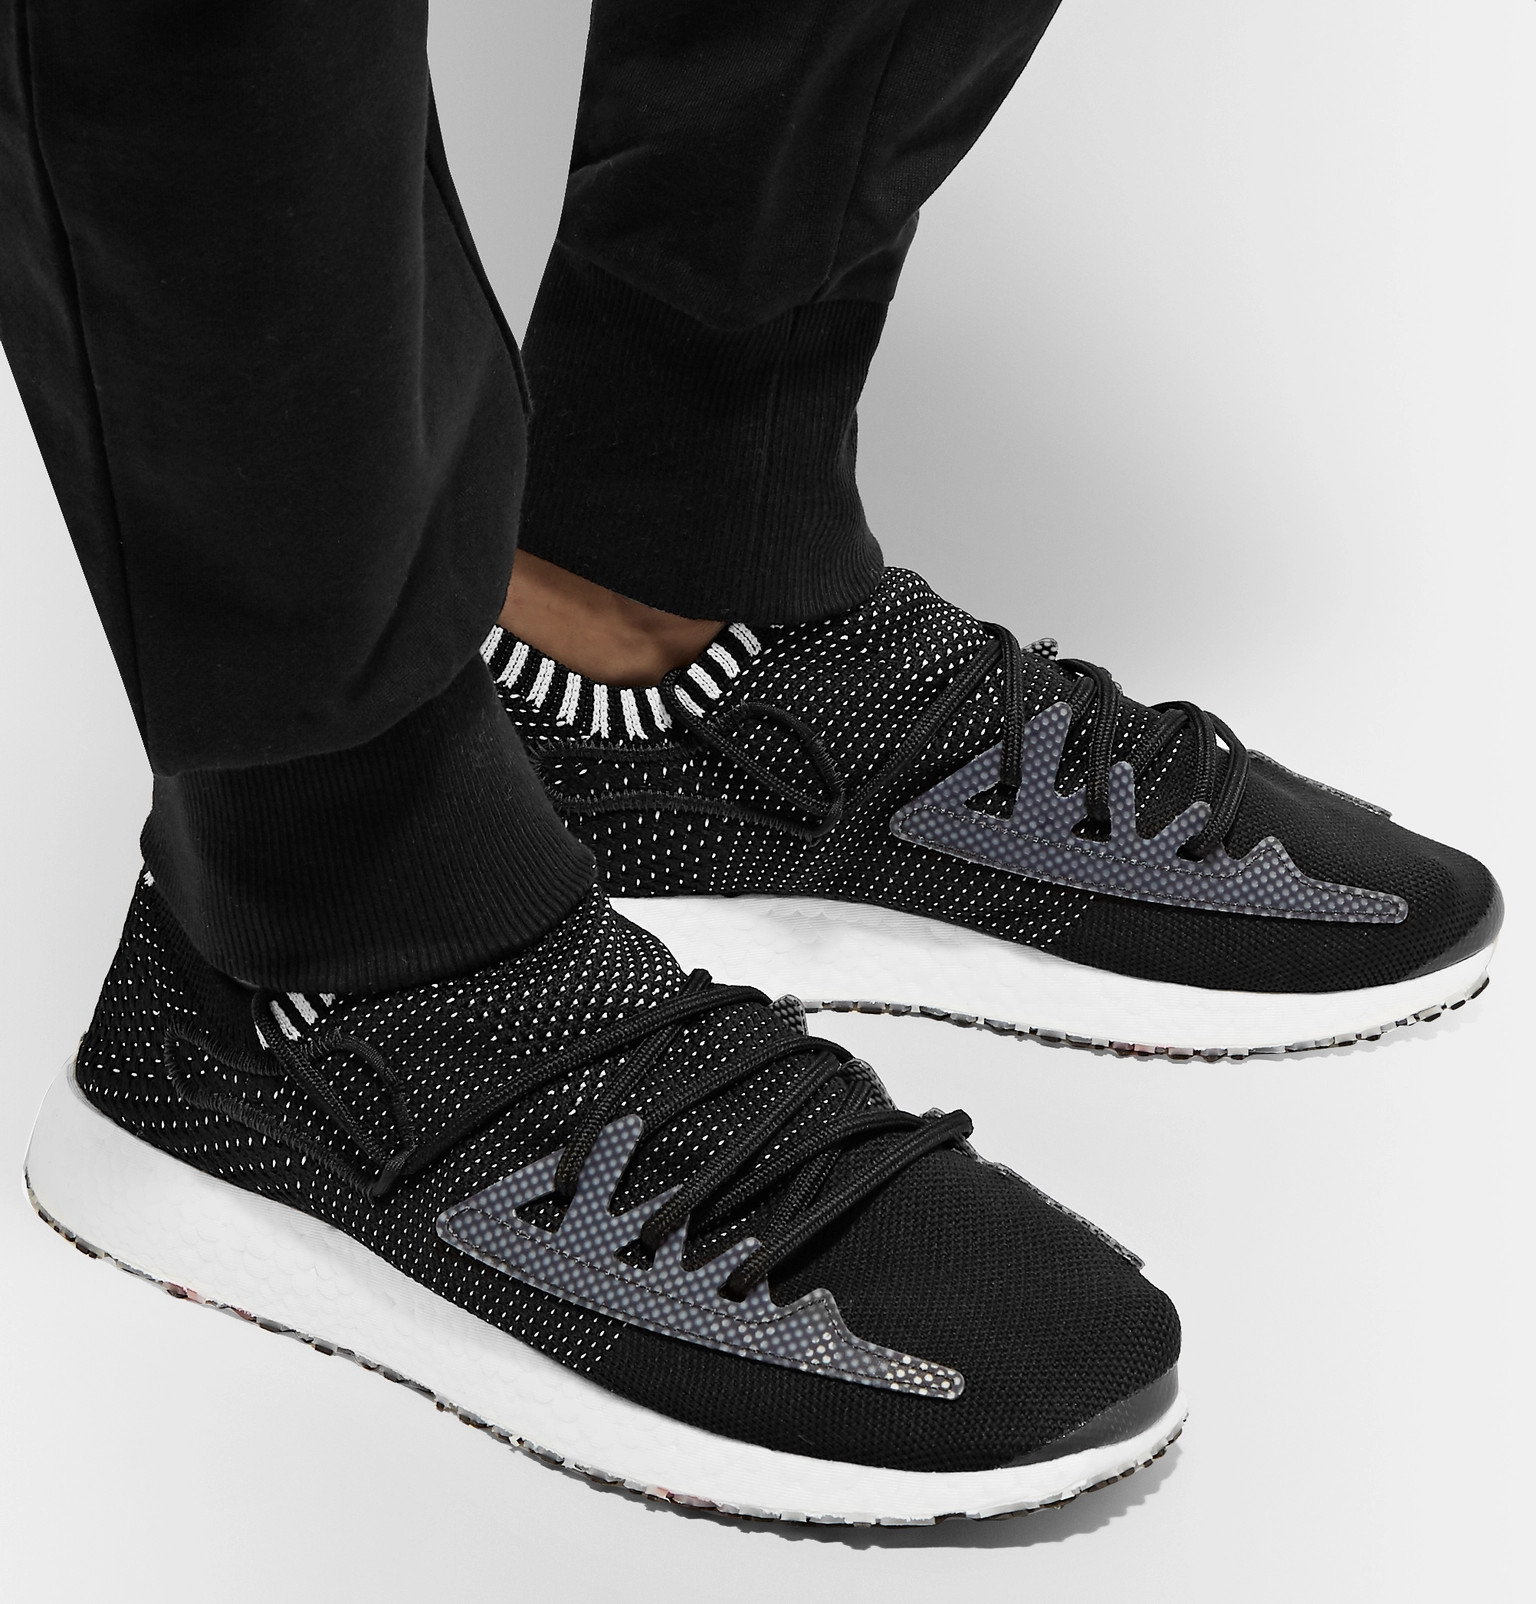 d1531936a Y-3Raito Racer Stretch-Knit Sneakers